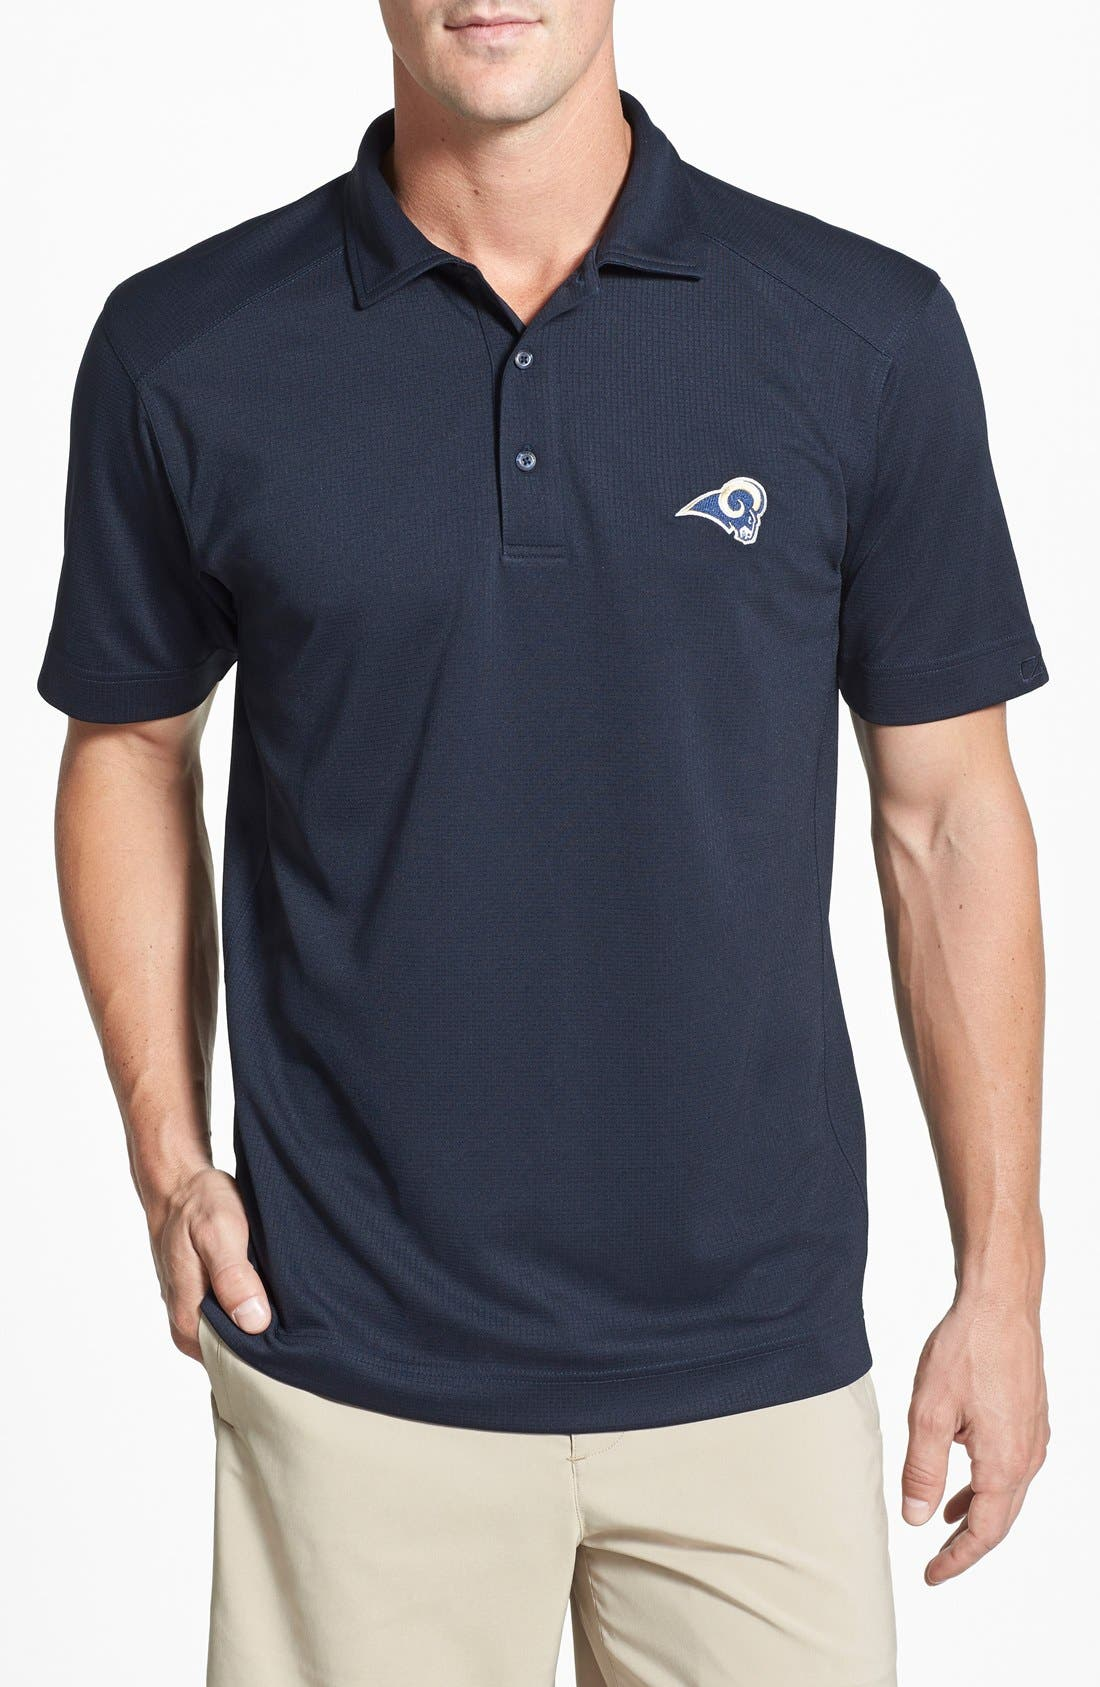 Alternate Image 1 Selected - Cutter & Buck Los Angeles Rams - Genre DryTec Moisture Wicking Polo